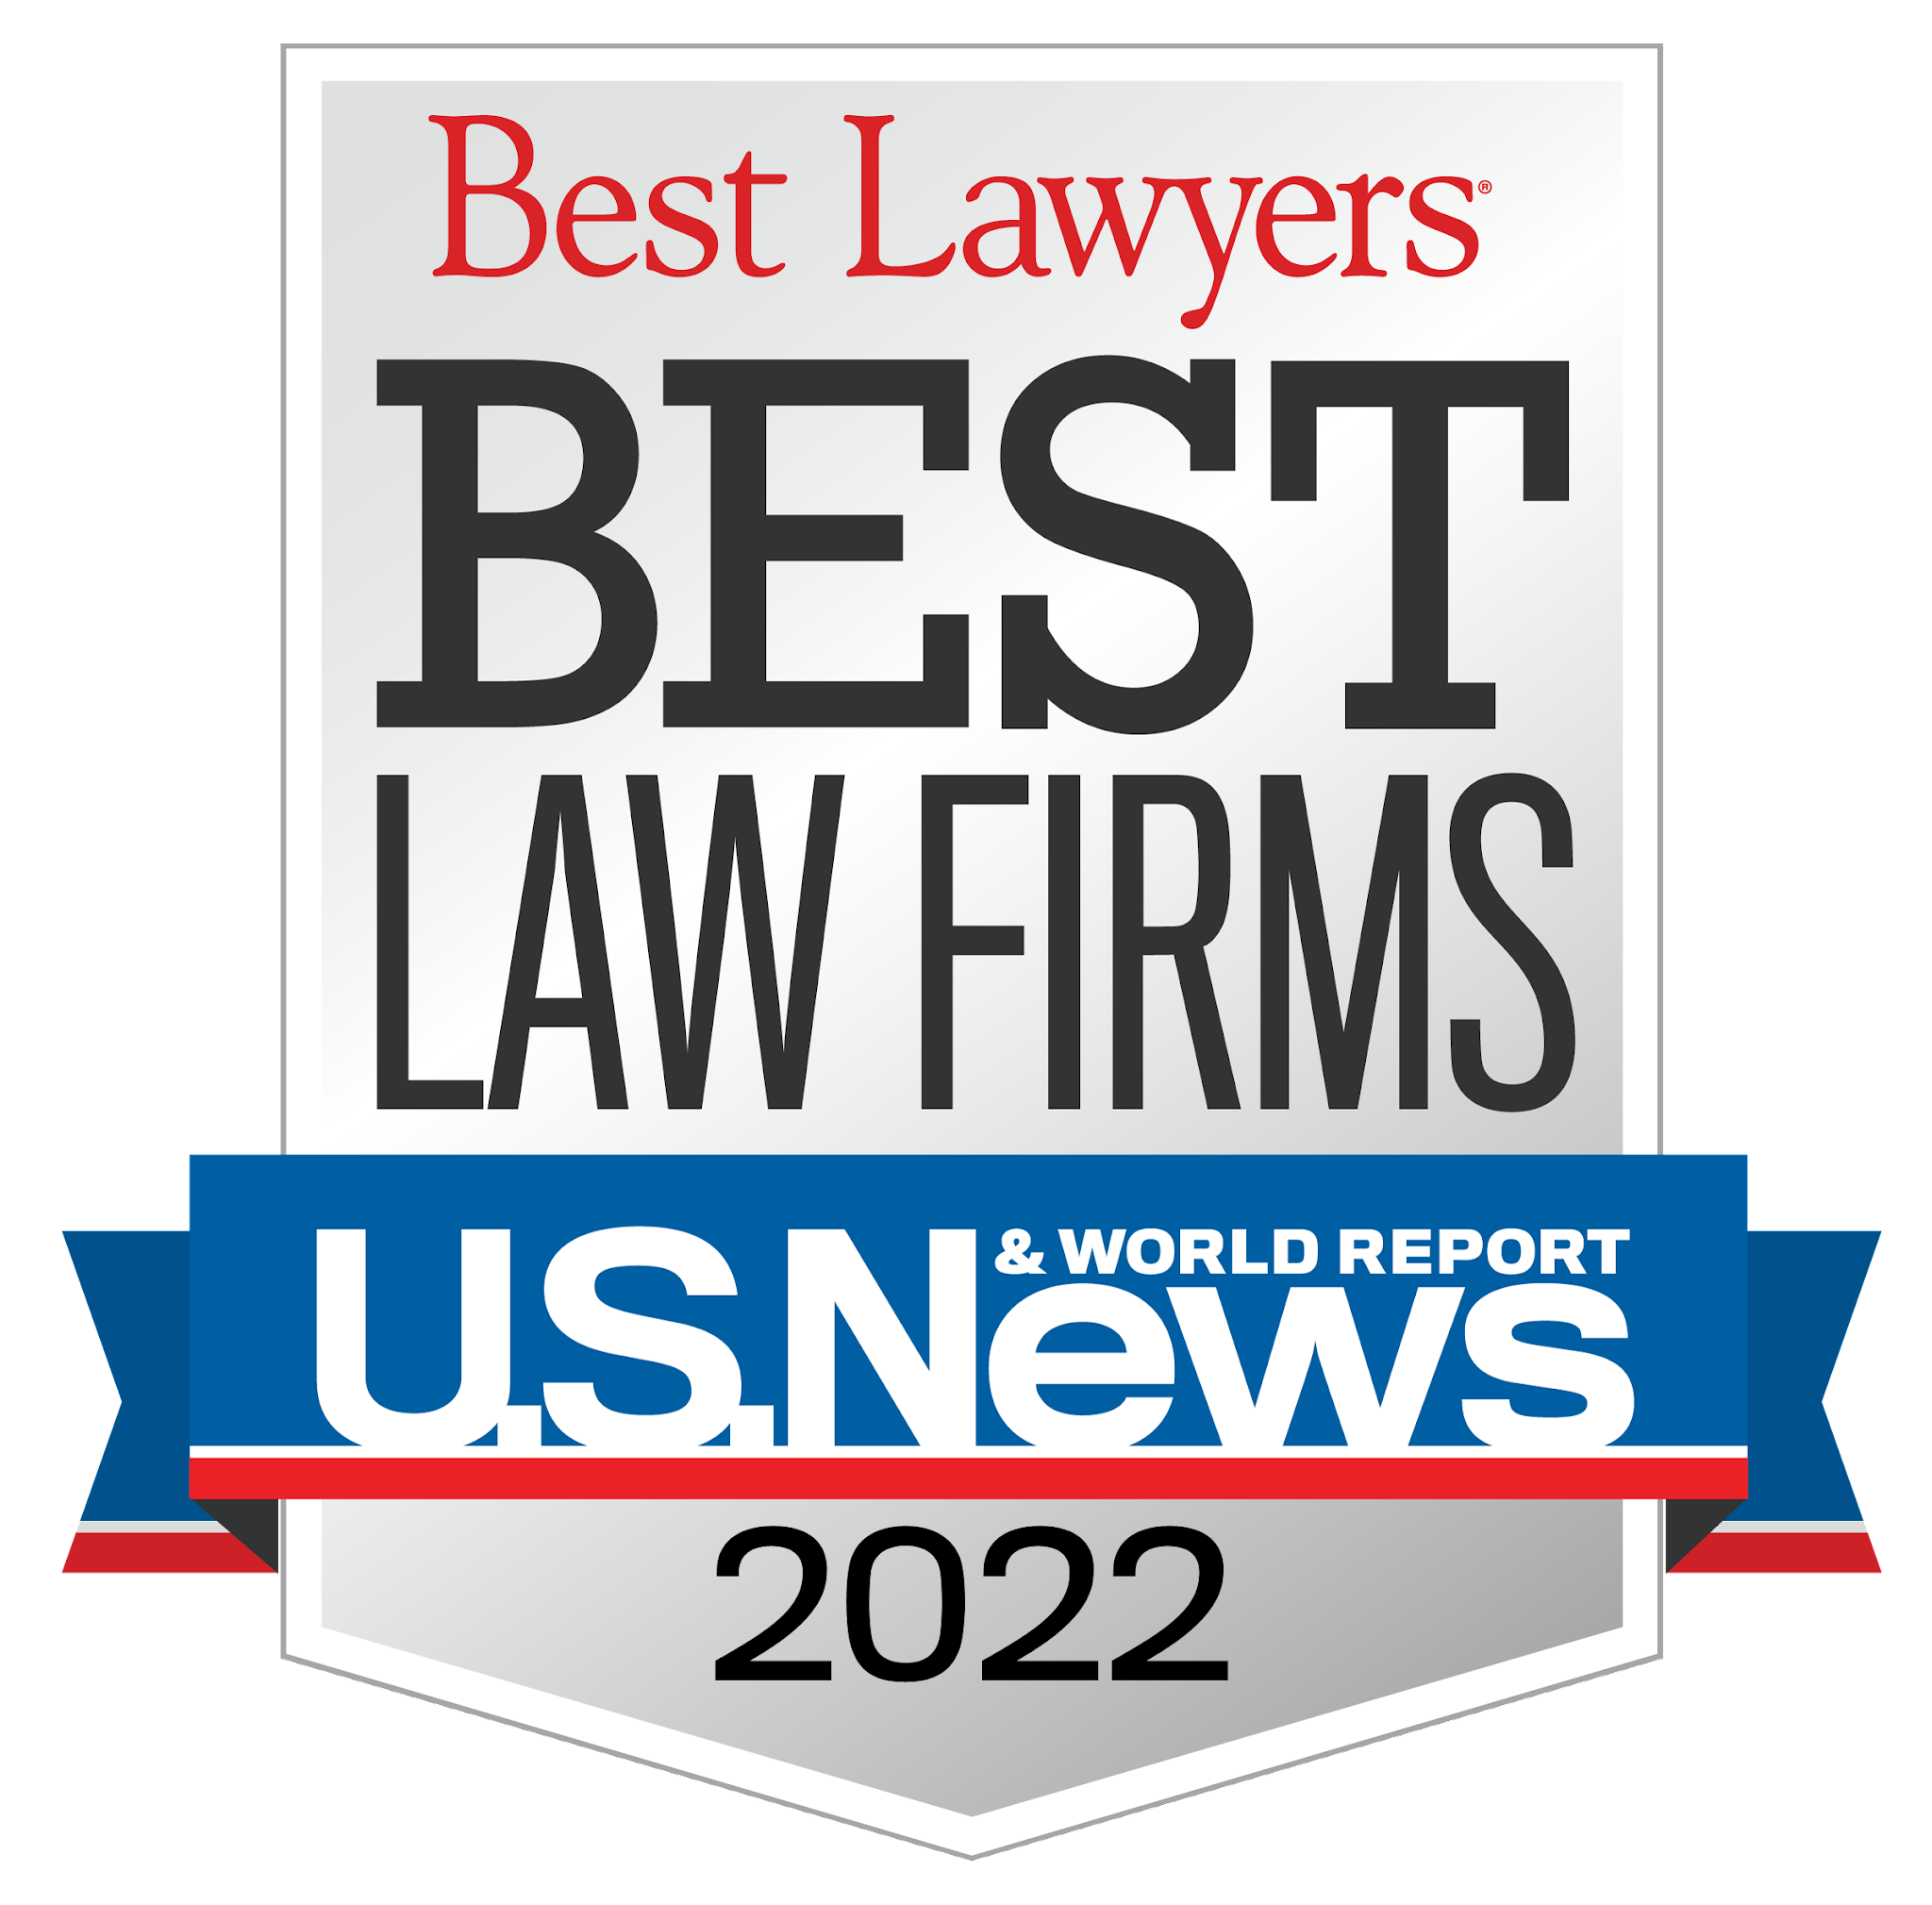 Best Law FIrms 2020 US News